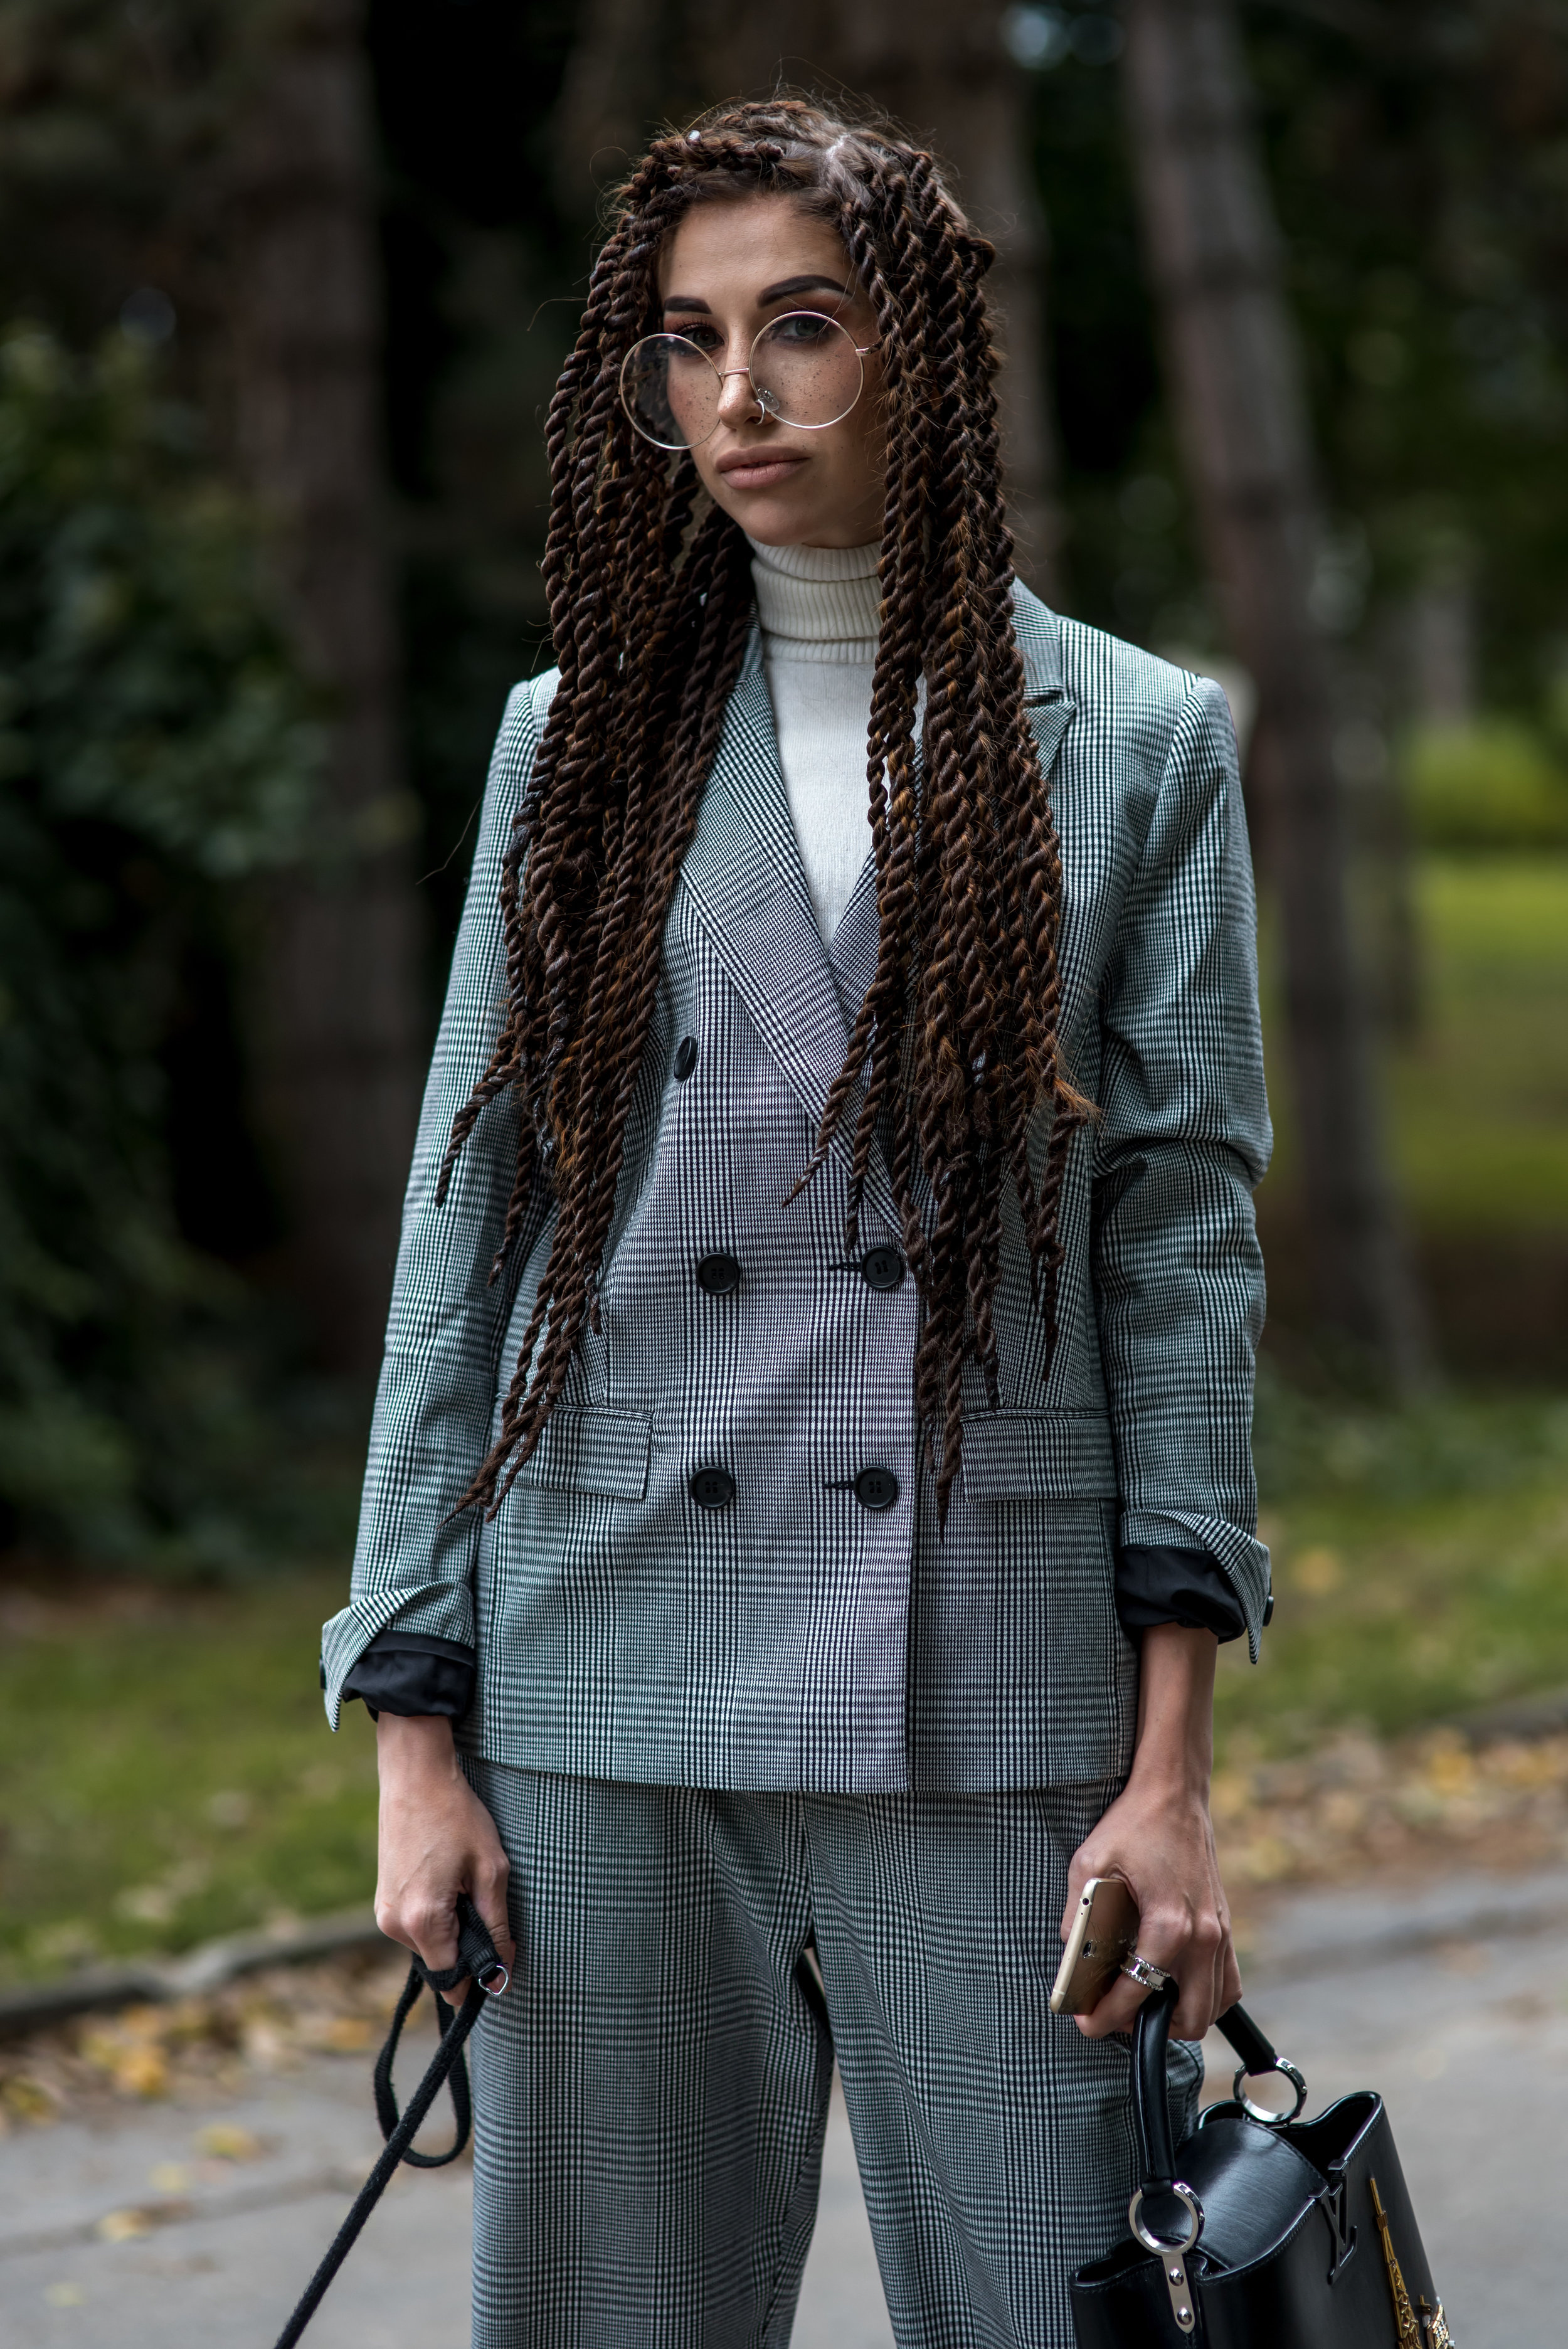 MBPFW SS18 Streetstyle